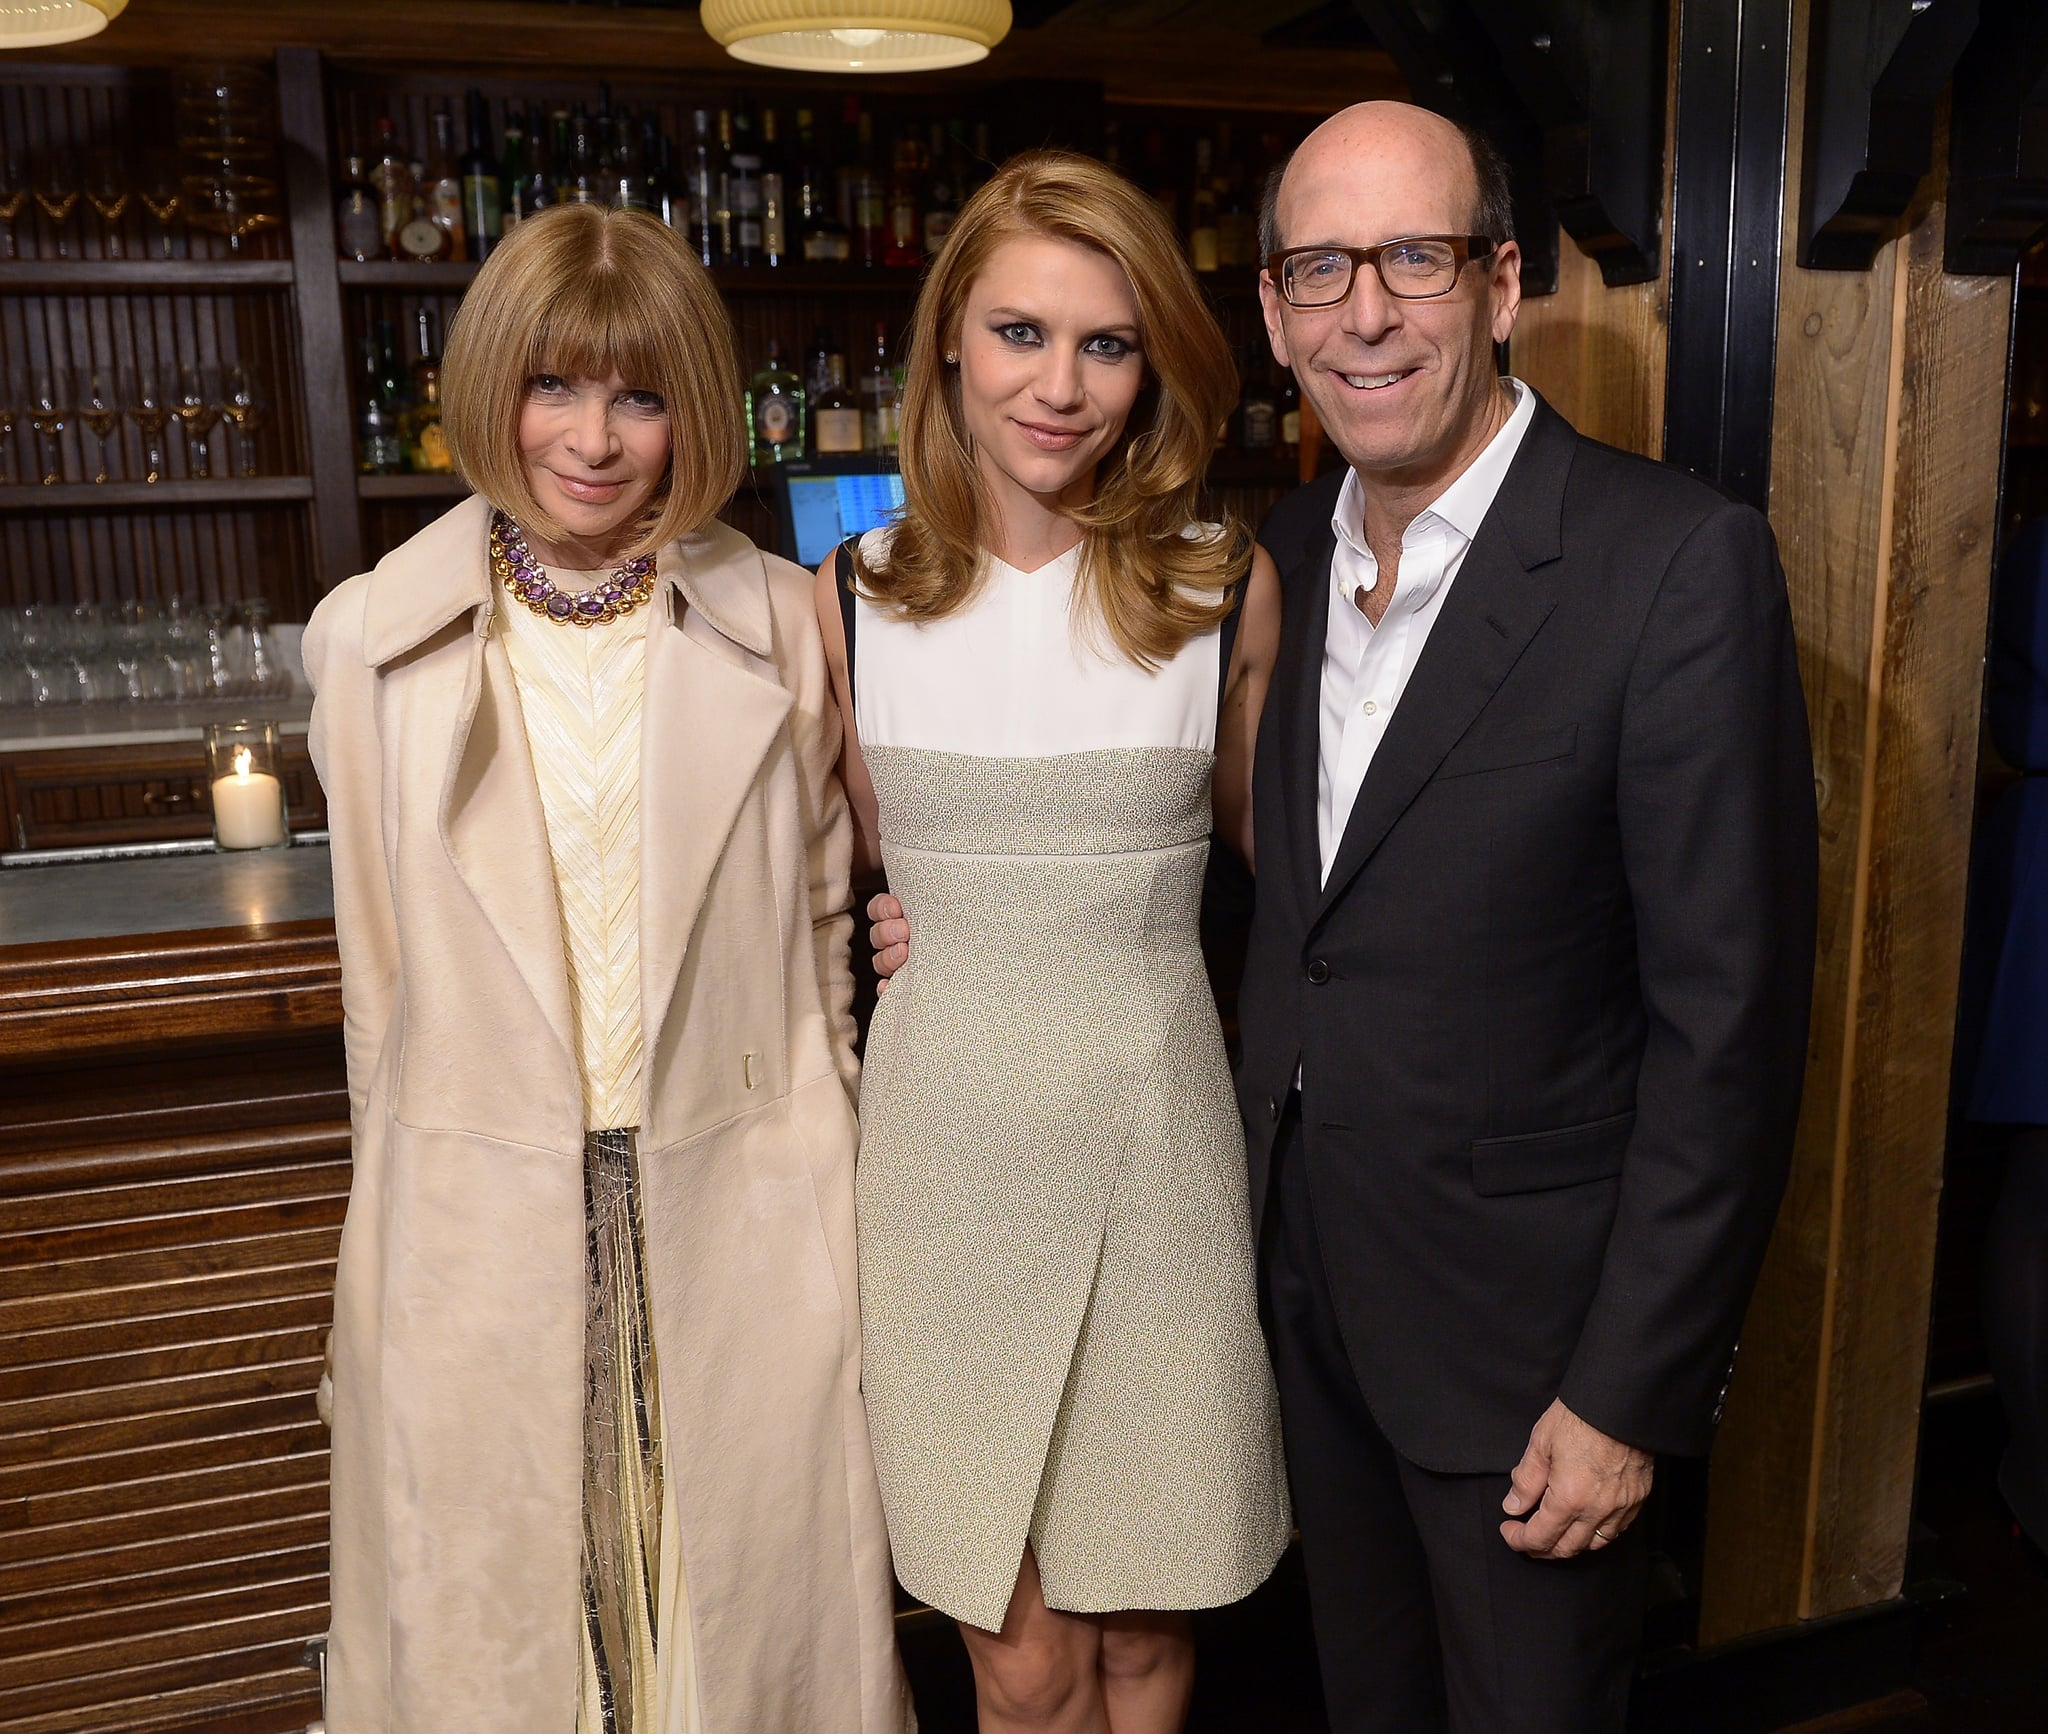 Anna Wintour, Claire Danes, and Matt Blank at Showtime's Homeland screening.